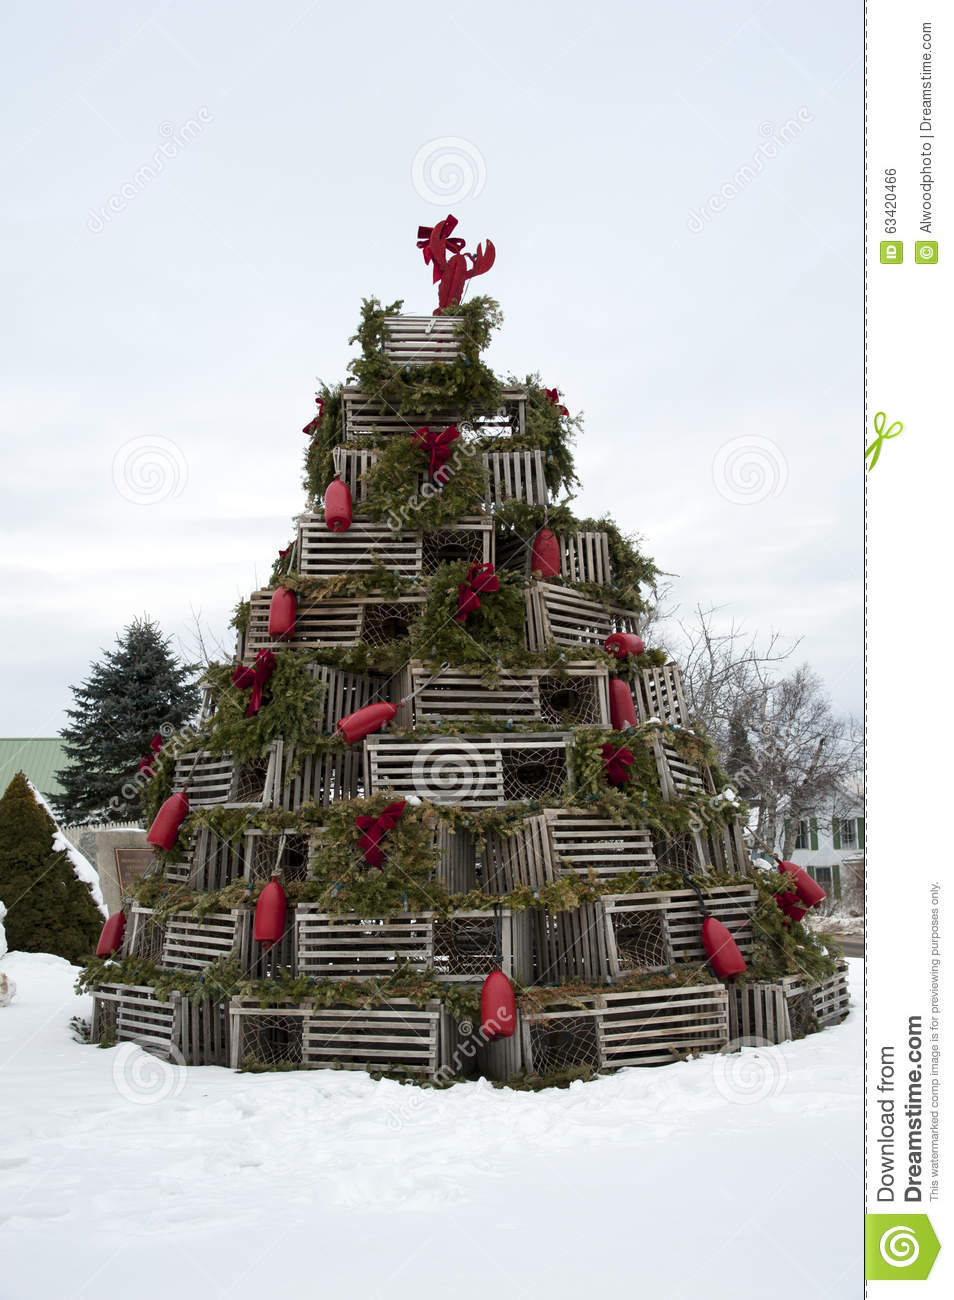 Lobster Trap Holiday Tree Stock Photo - Image: 63420466